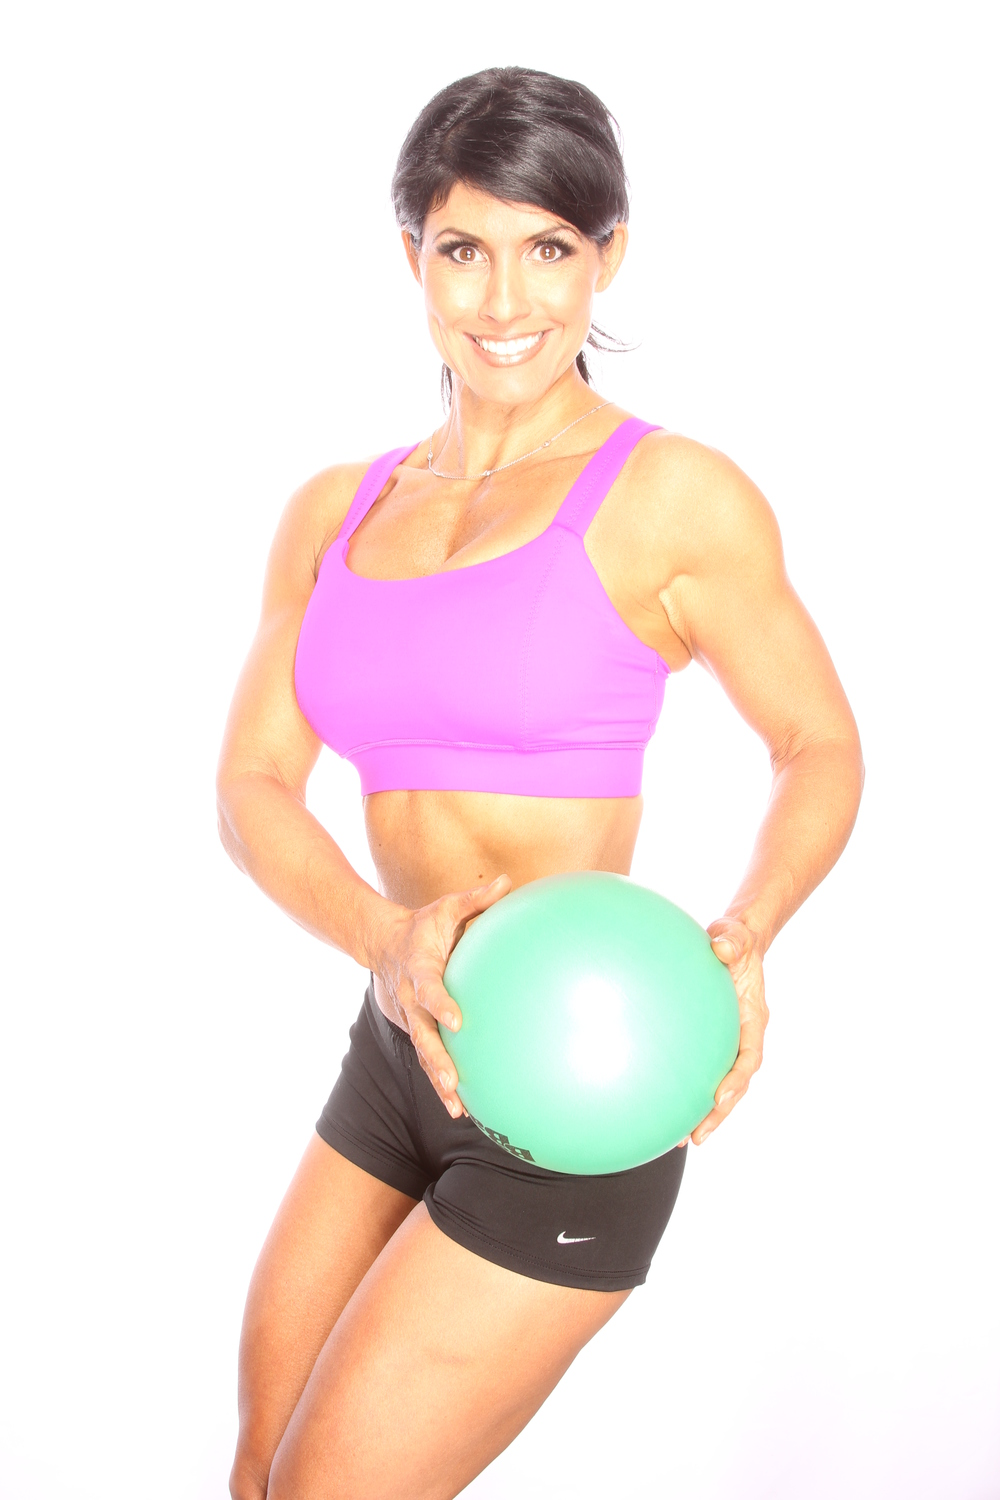 personal trainer, physical fitness, Tiara Wall, FitBody by Tiara, Roseville, Rocklin, Sacramento, women's fitness, figure modeling, fitness training